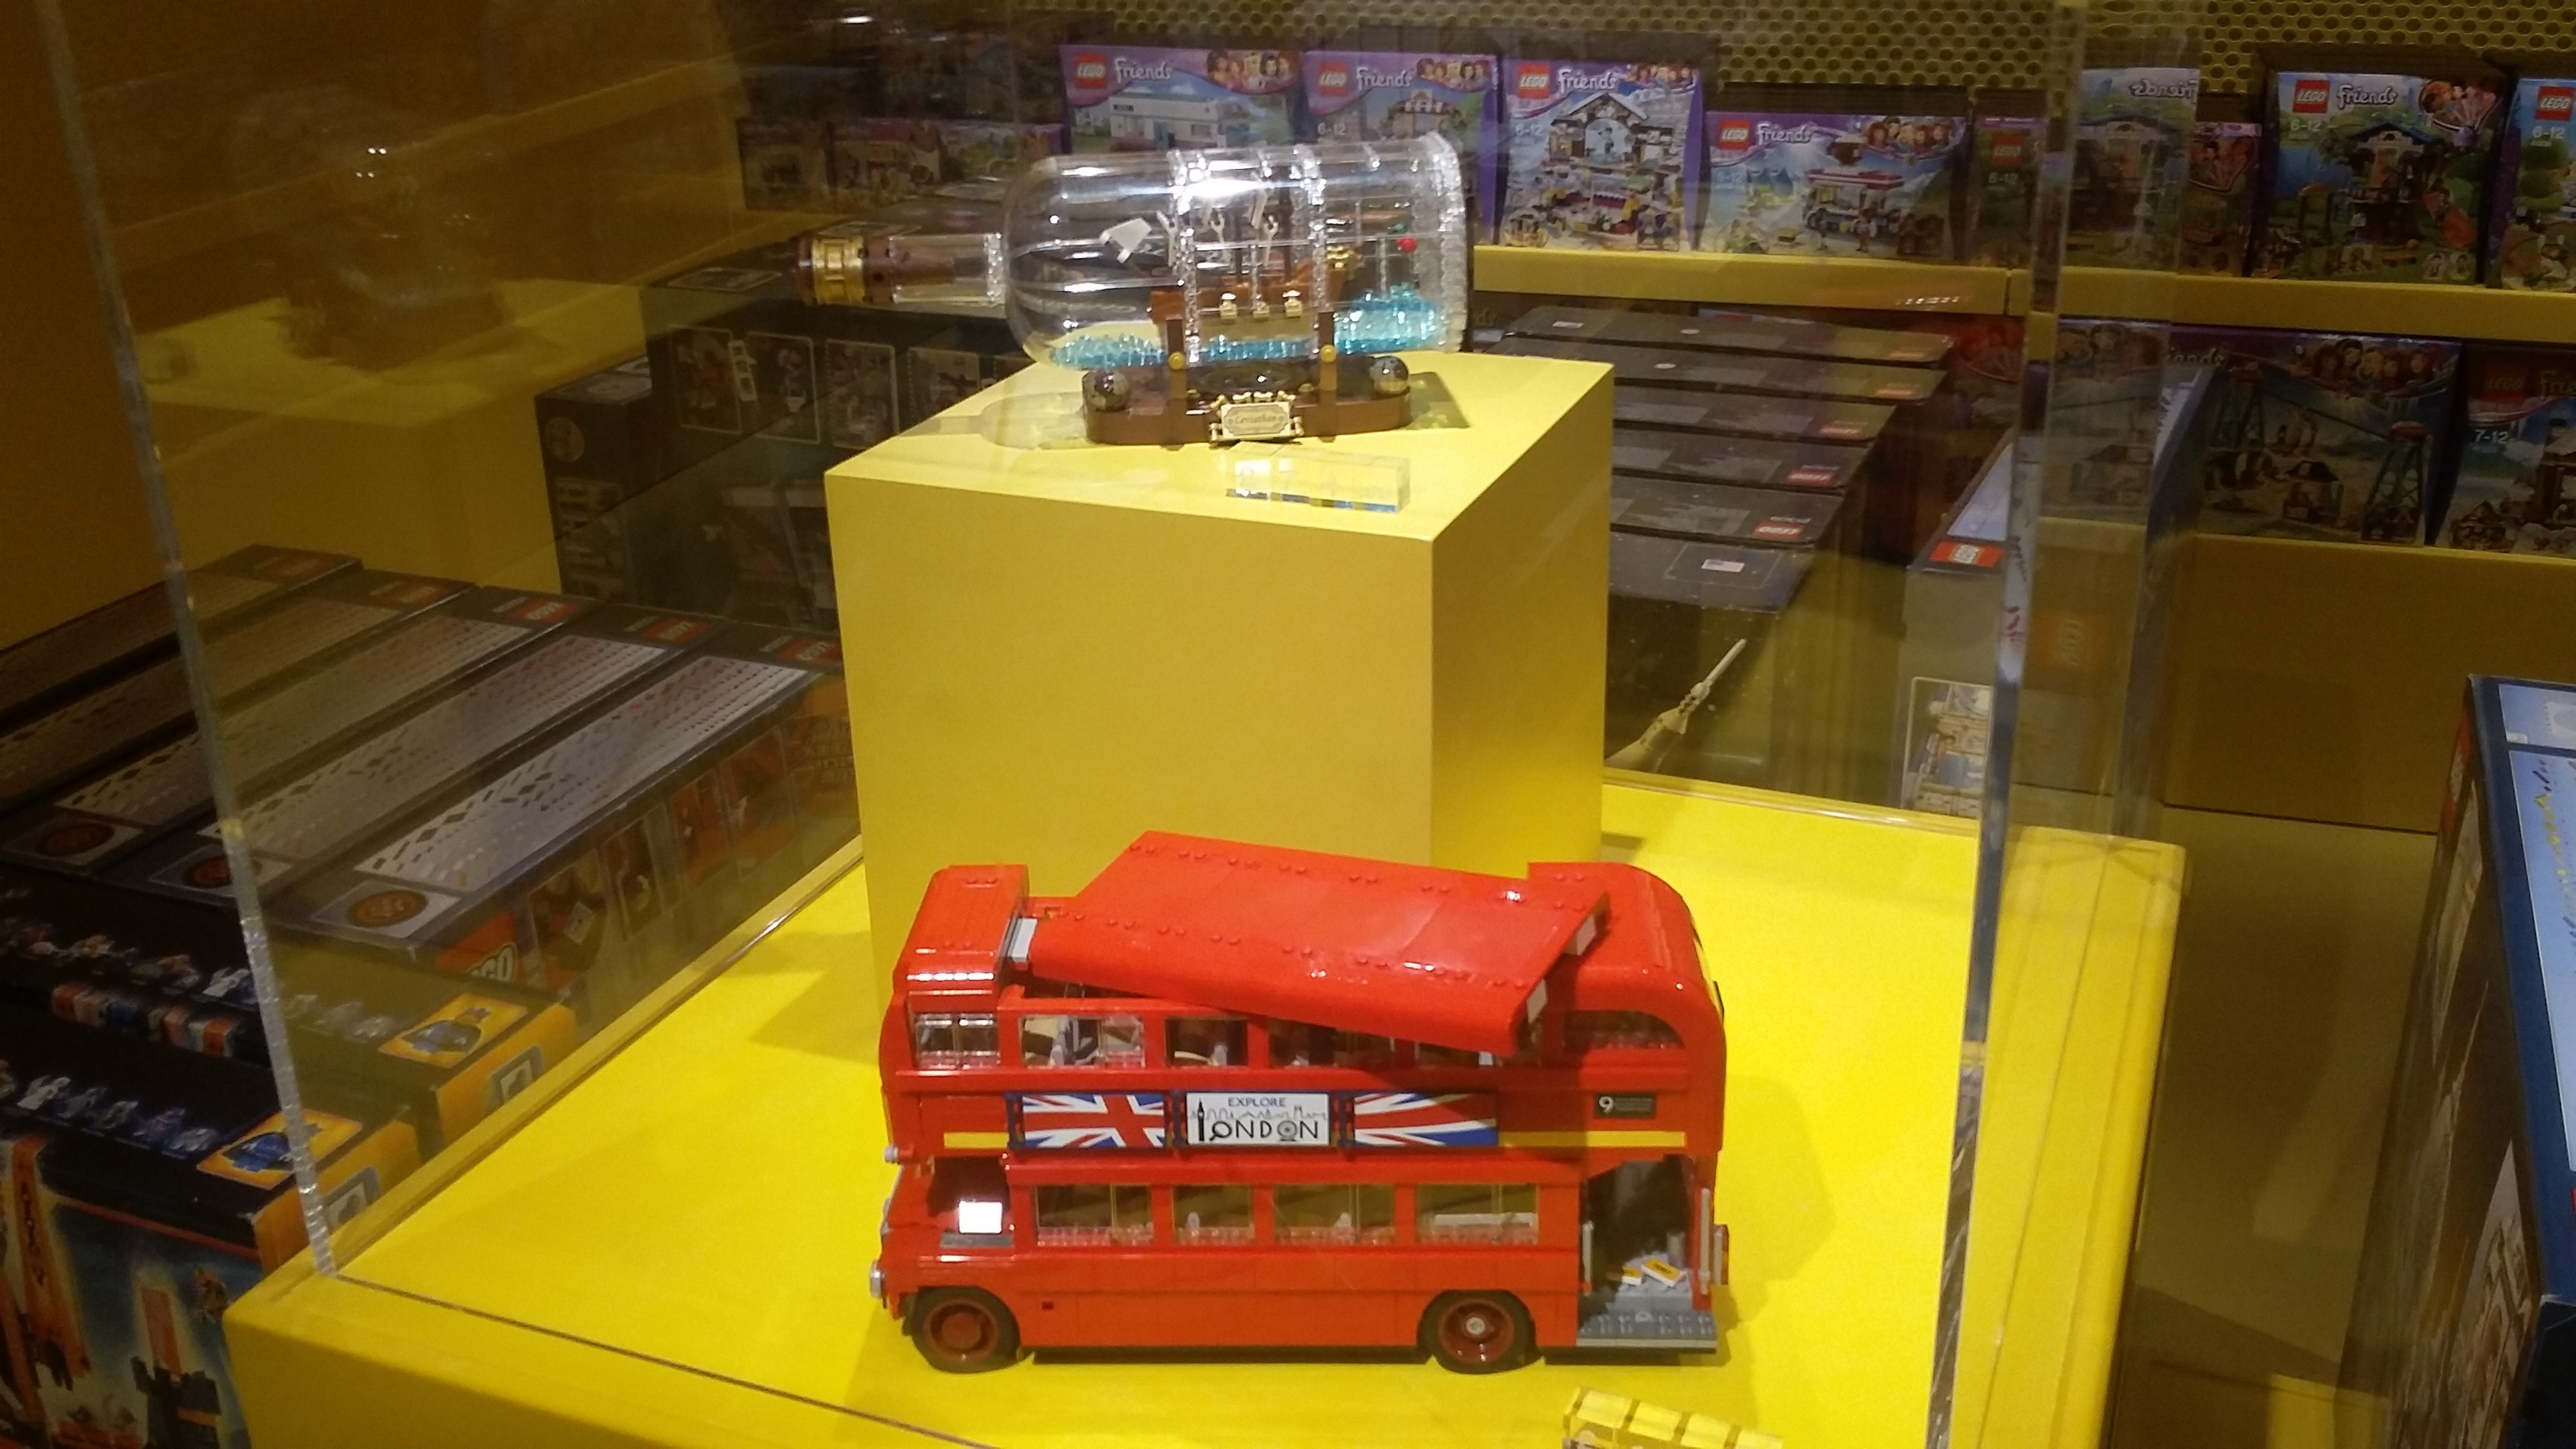 Harrods - LEGO Ship in a Bottle and London Bus display